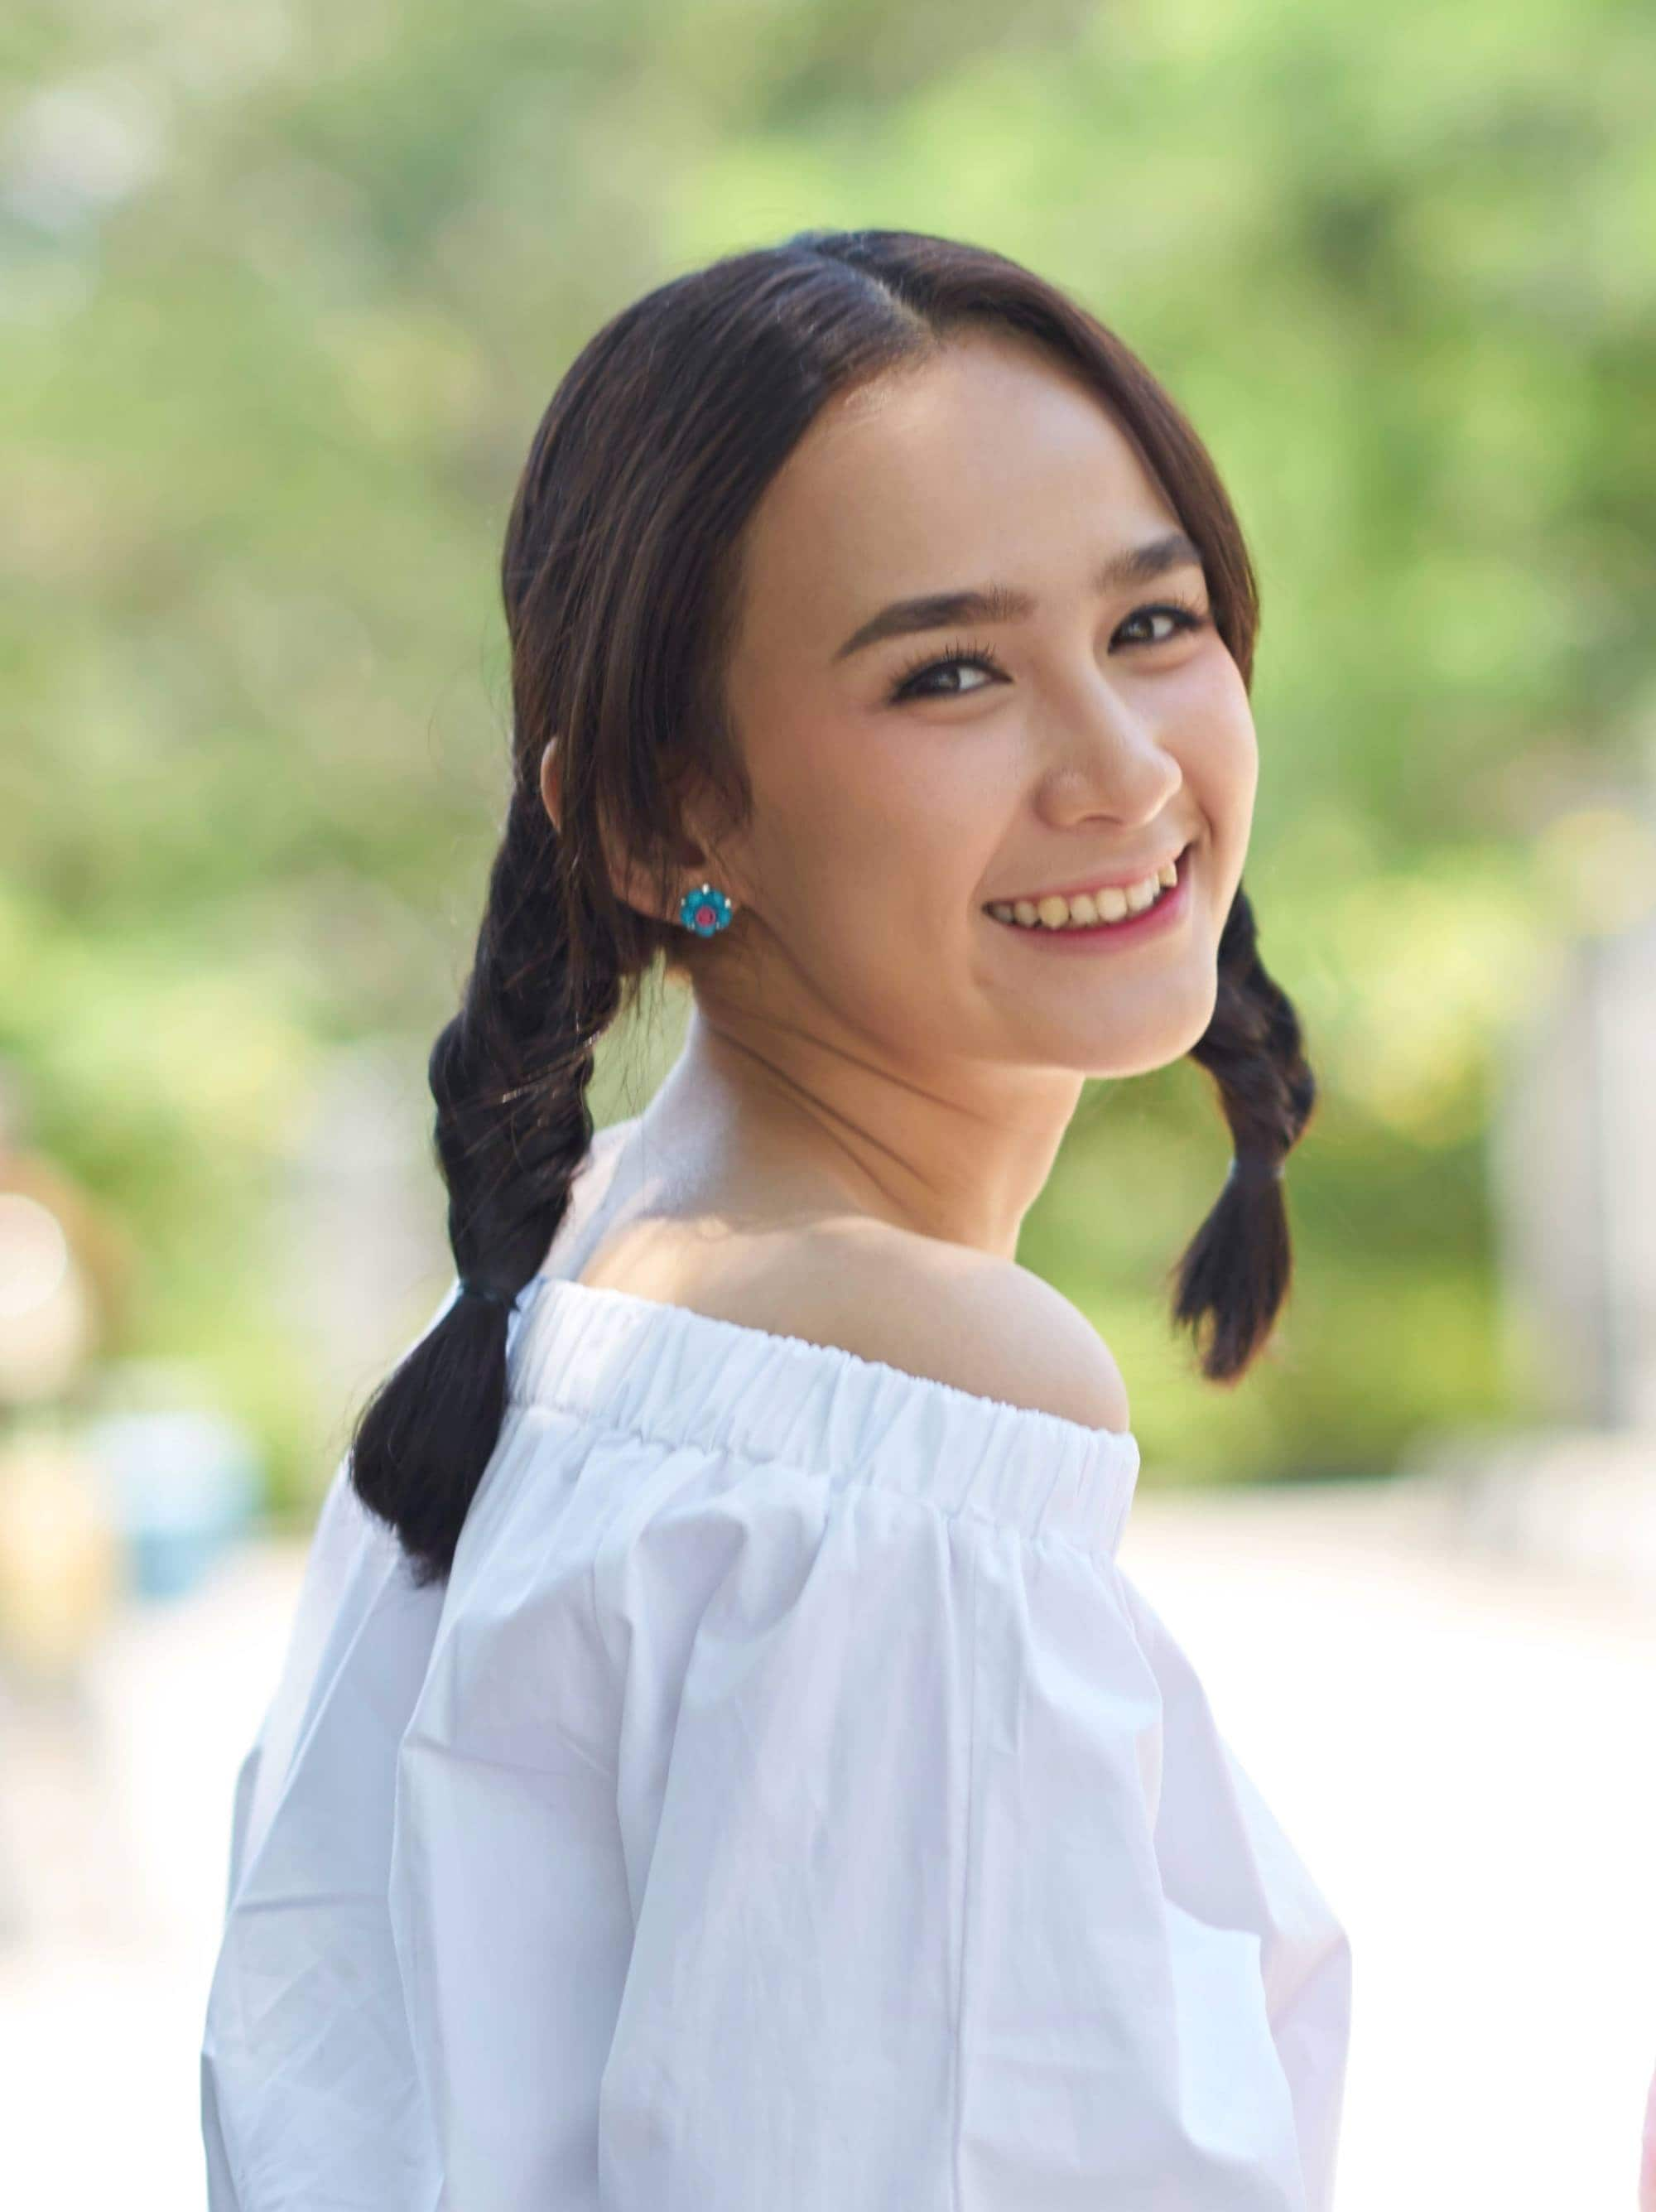 Summer braid: Closeup shot of an Asian woman with medium-length dark hair in two braids smiling outdoors